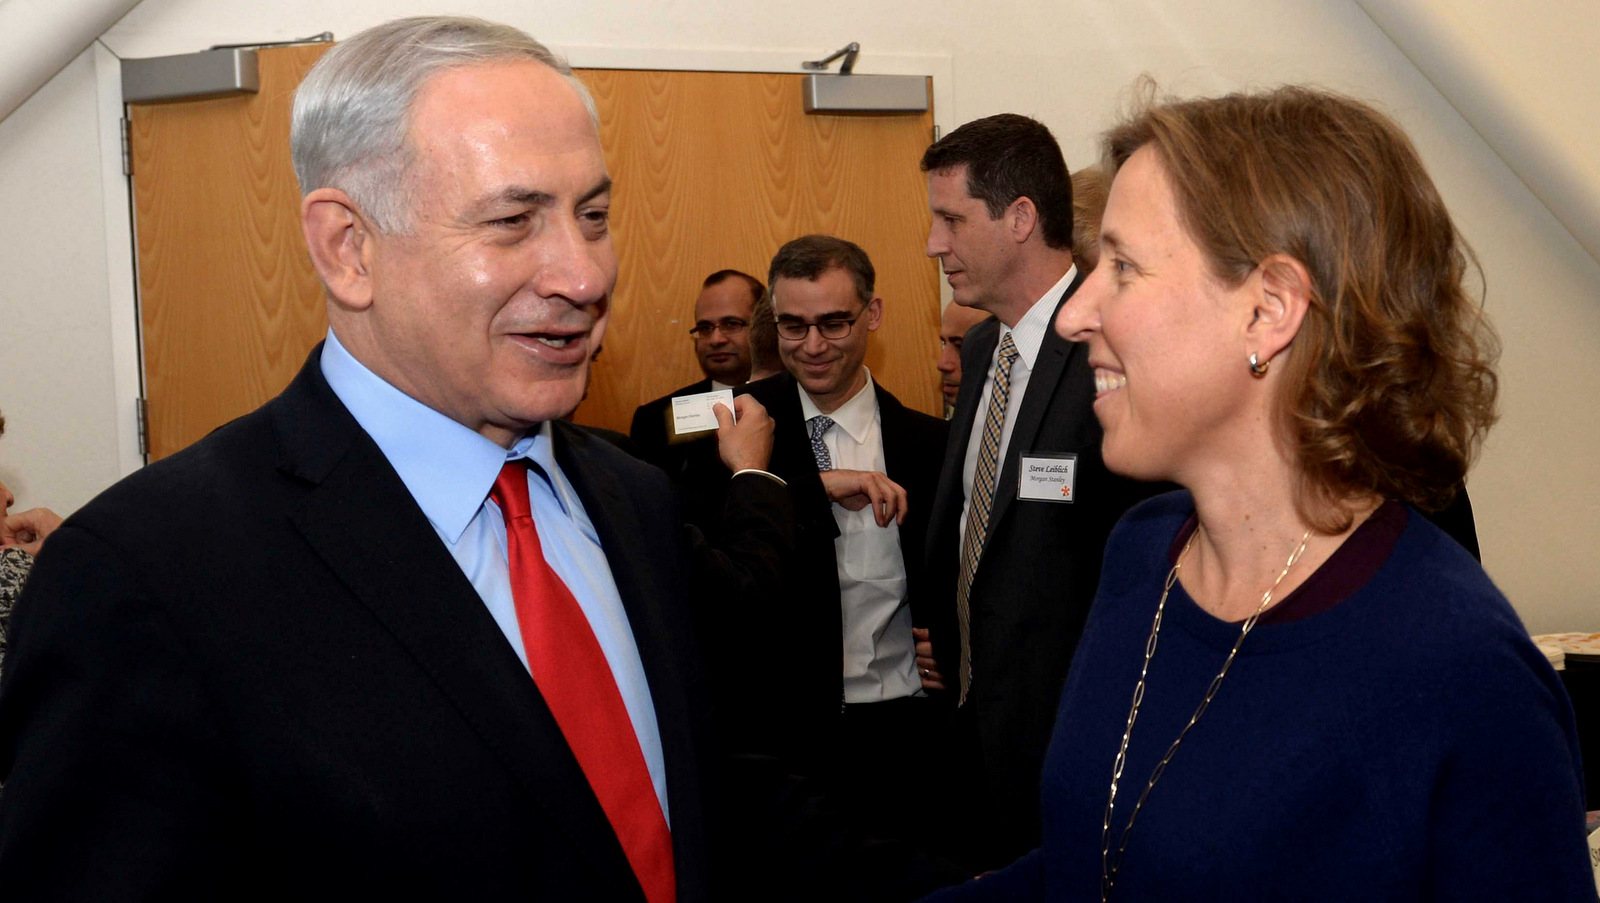 Israeli Prime Minister Benjamin Netanyahu meets with CEO of Youtube Susan Wojcicki, in Silicon Valley, California, March 06, 2014. (Photo: Avi Ohayon/GPO)